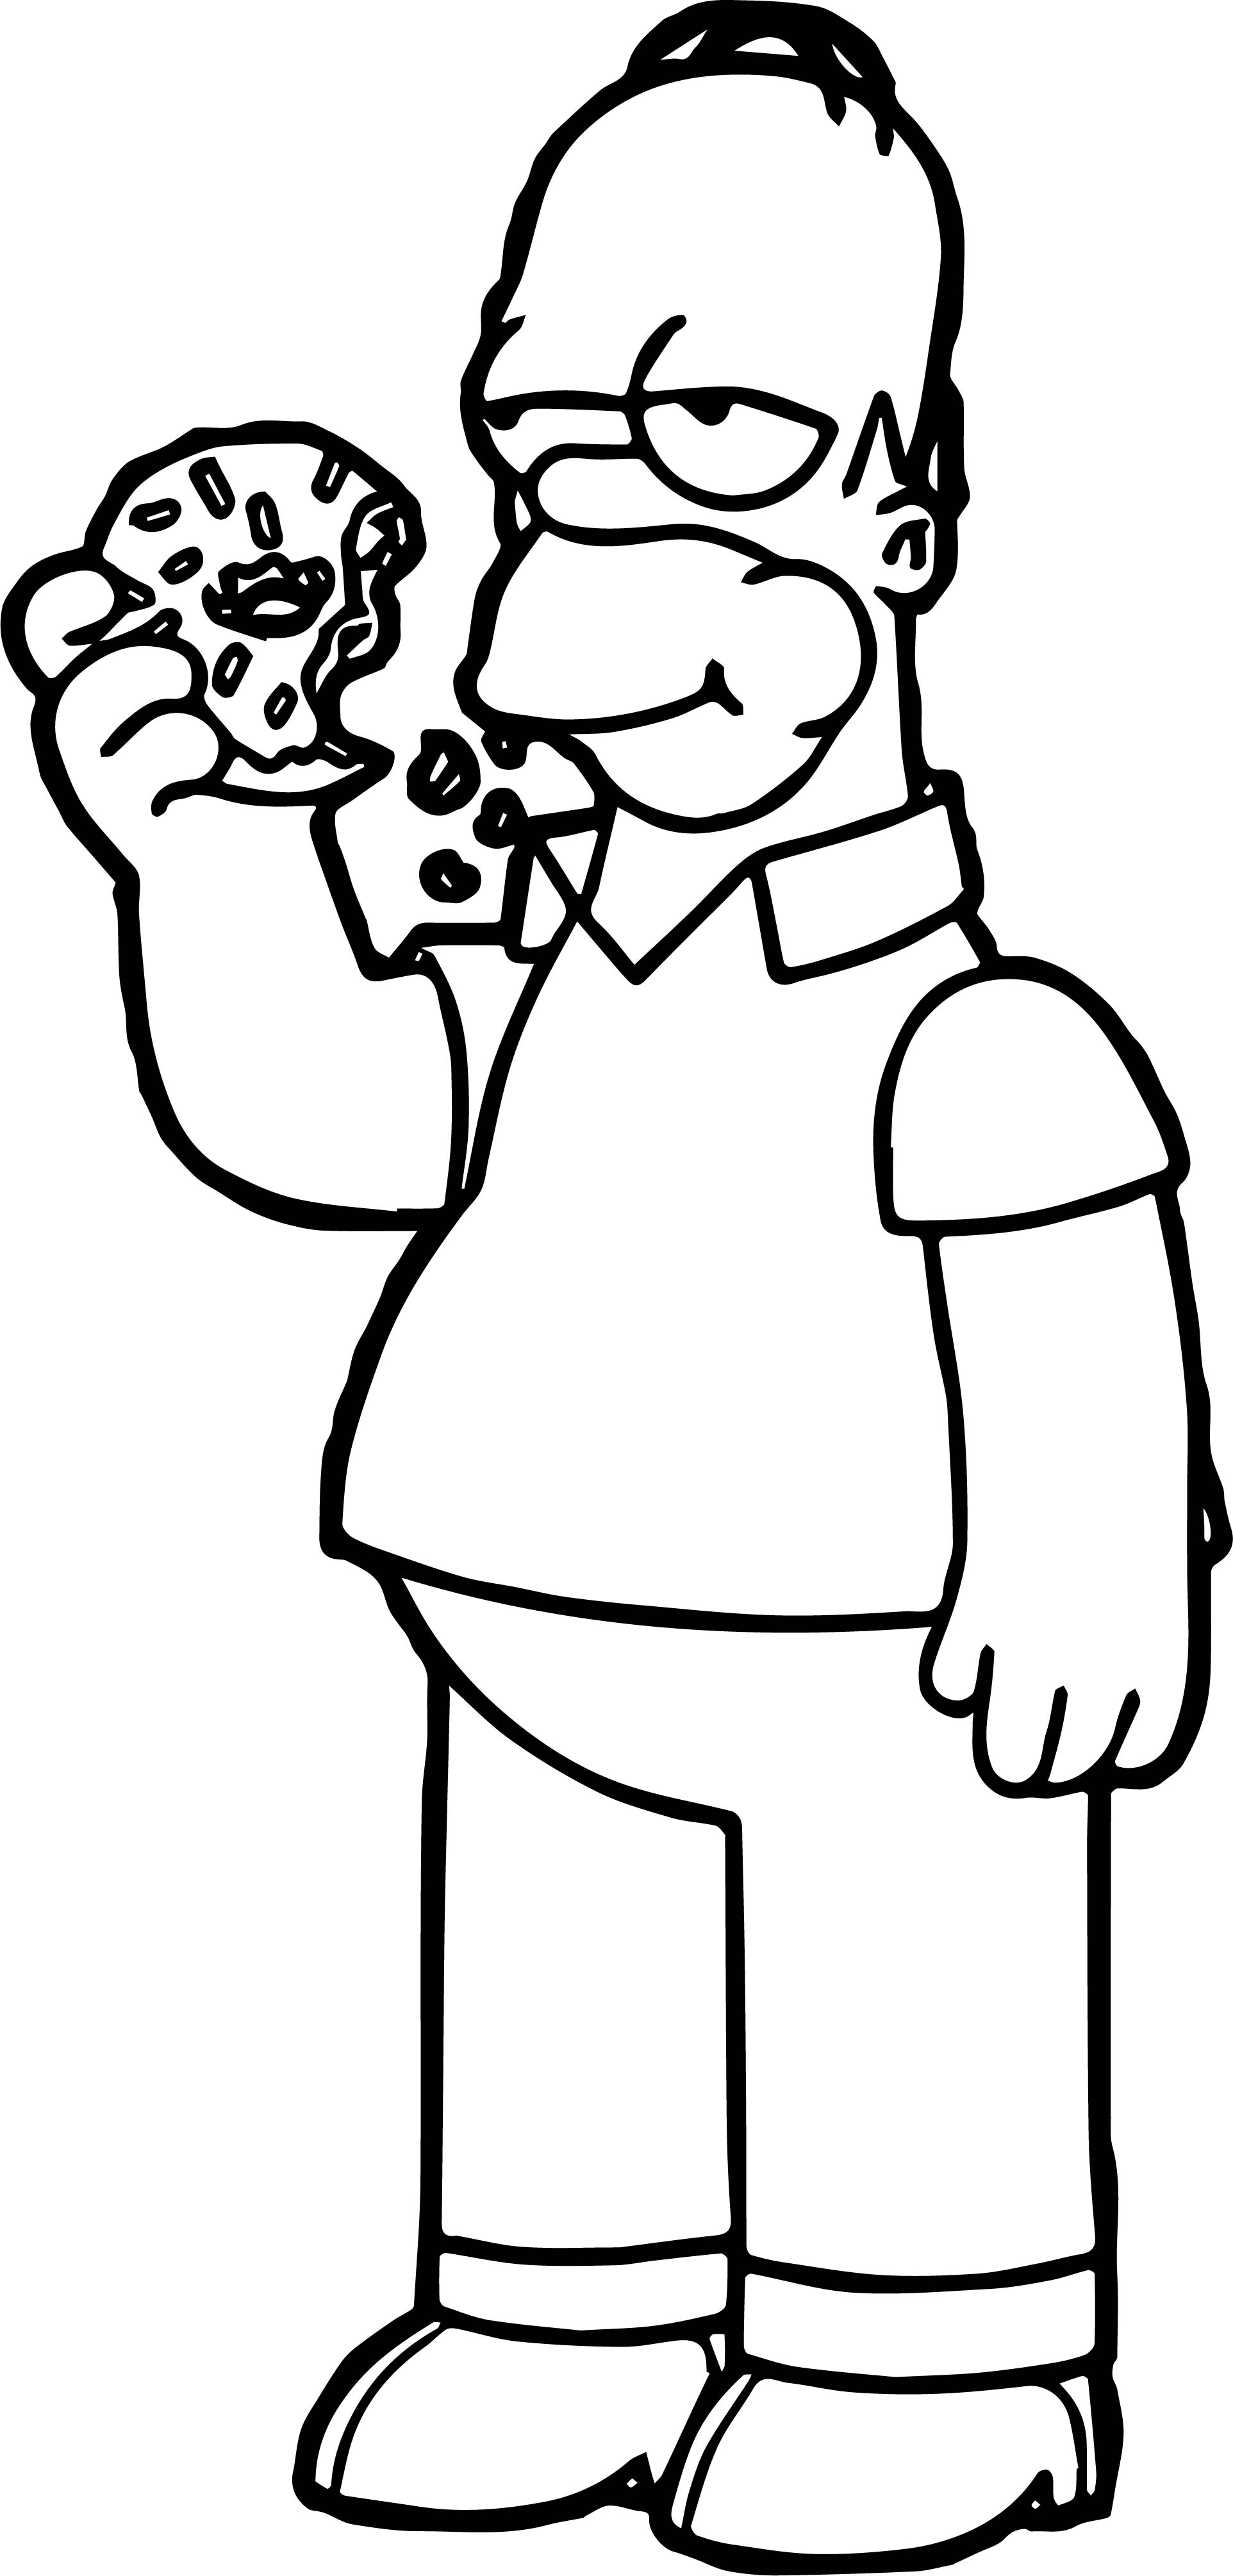 Homer Simpson Eating Donut Coloring Page